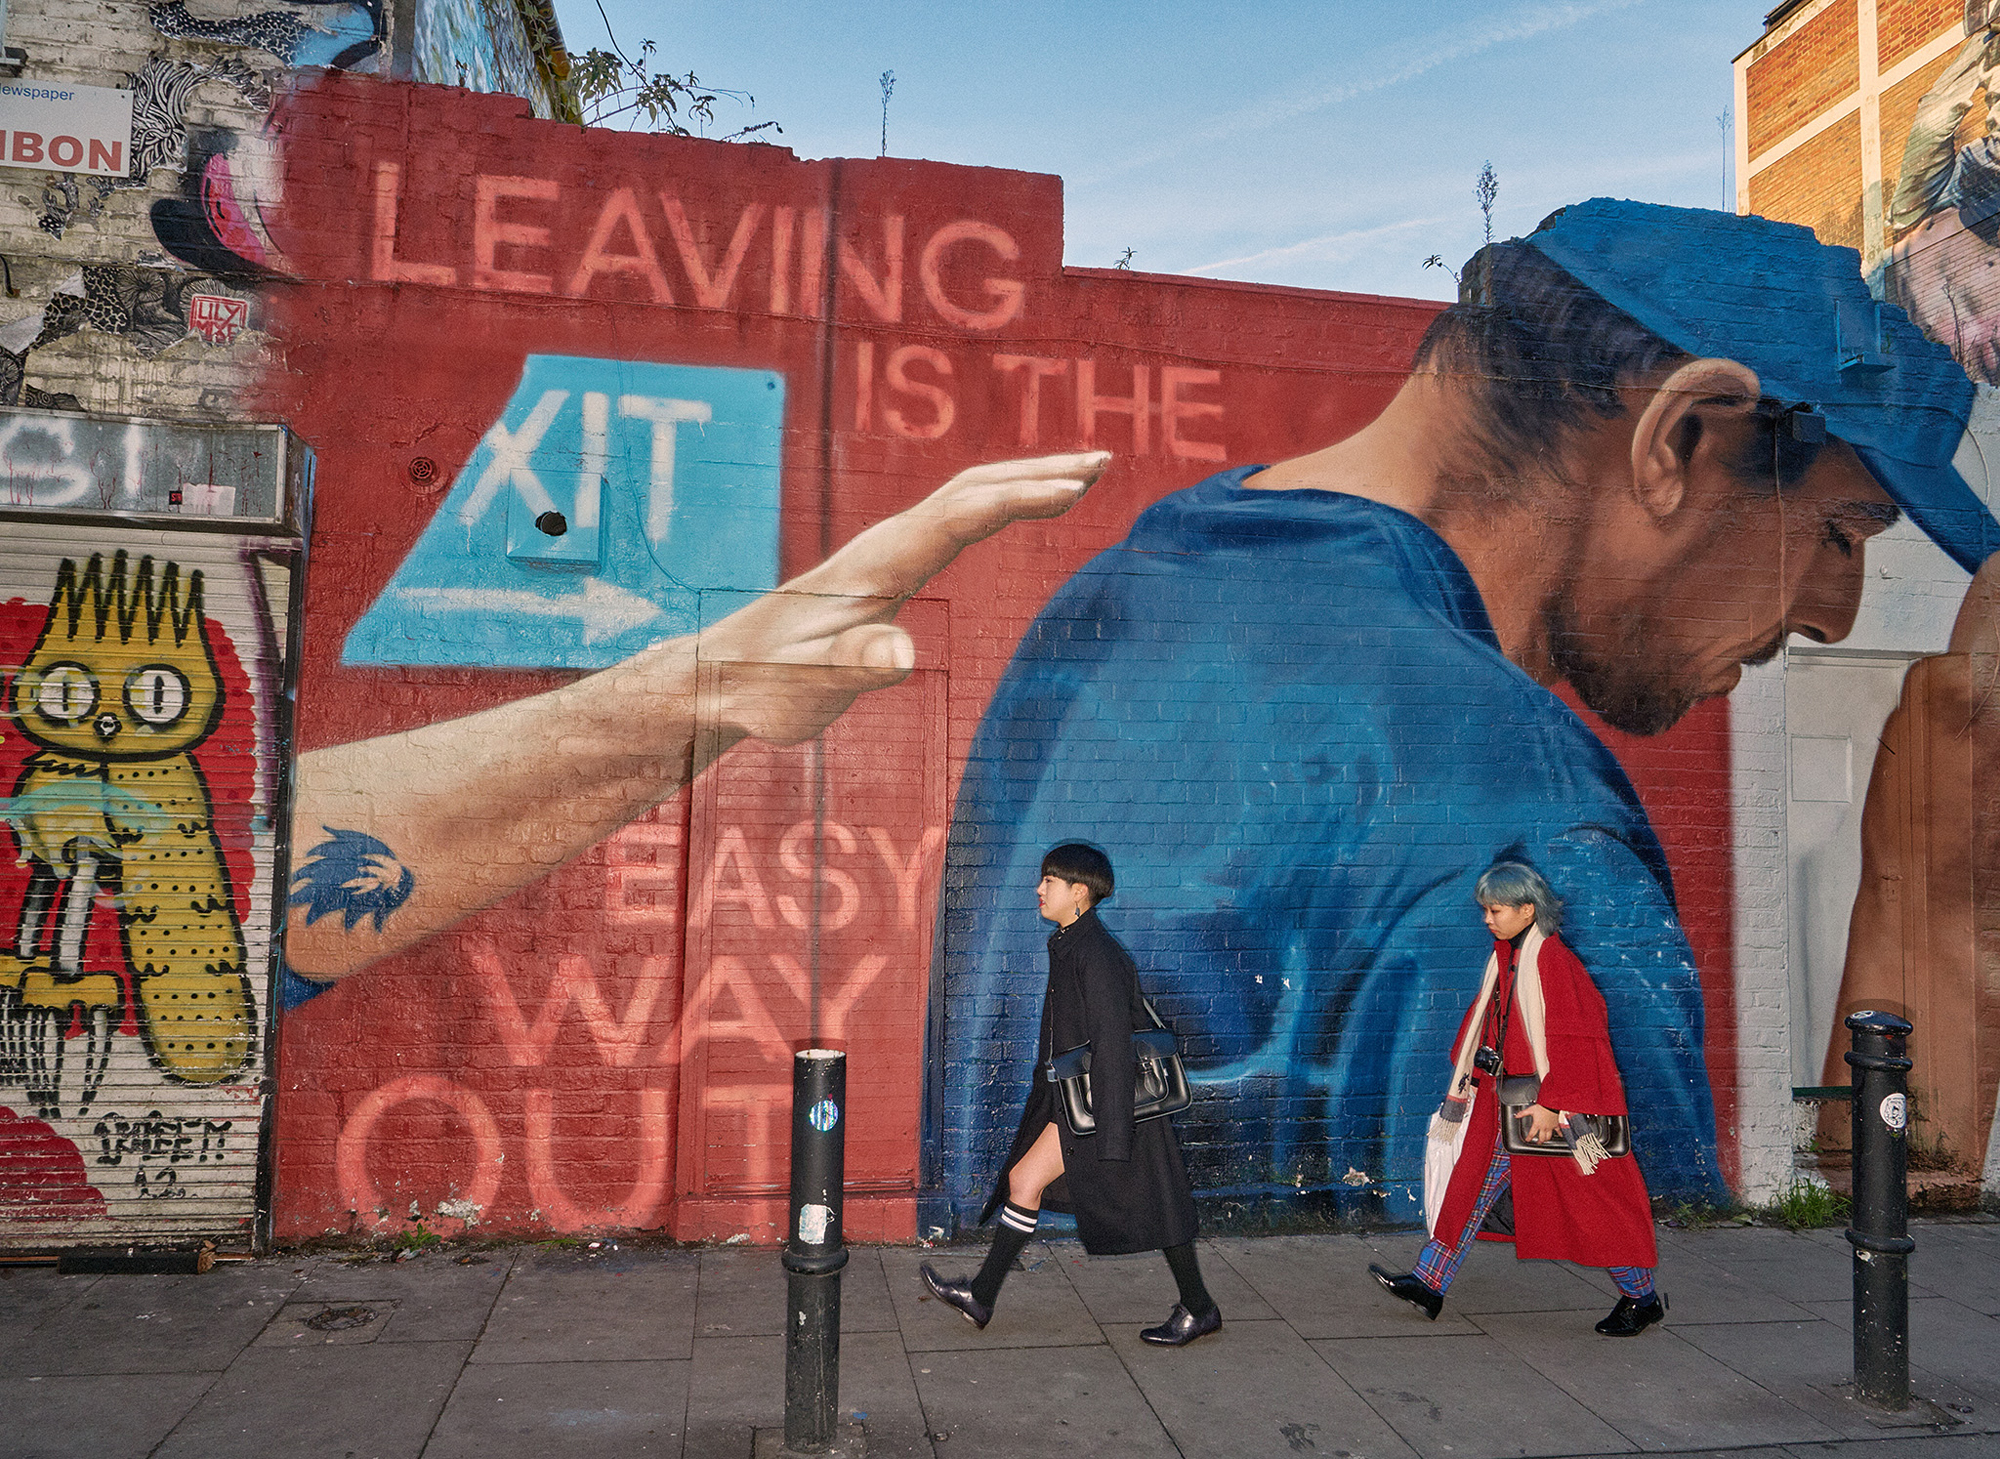 The bustling street of Shoreditch as the subject of Dougie Wall's latest photography series - East Ended